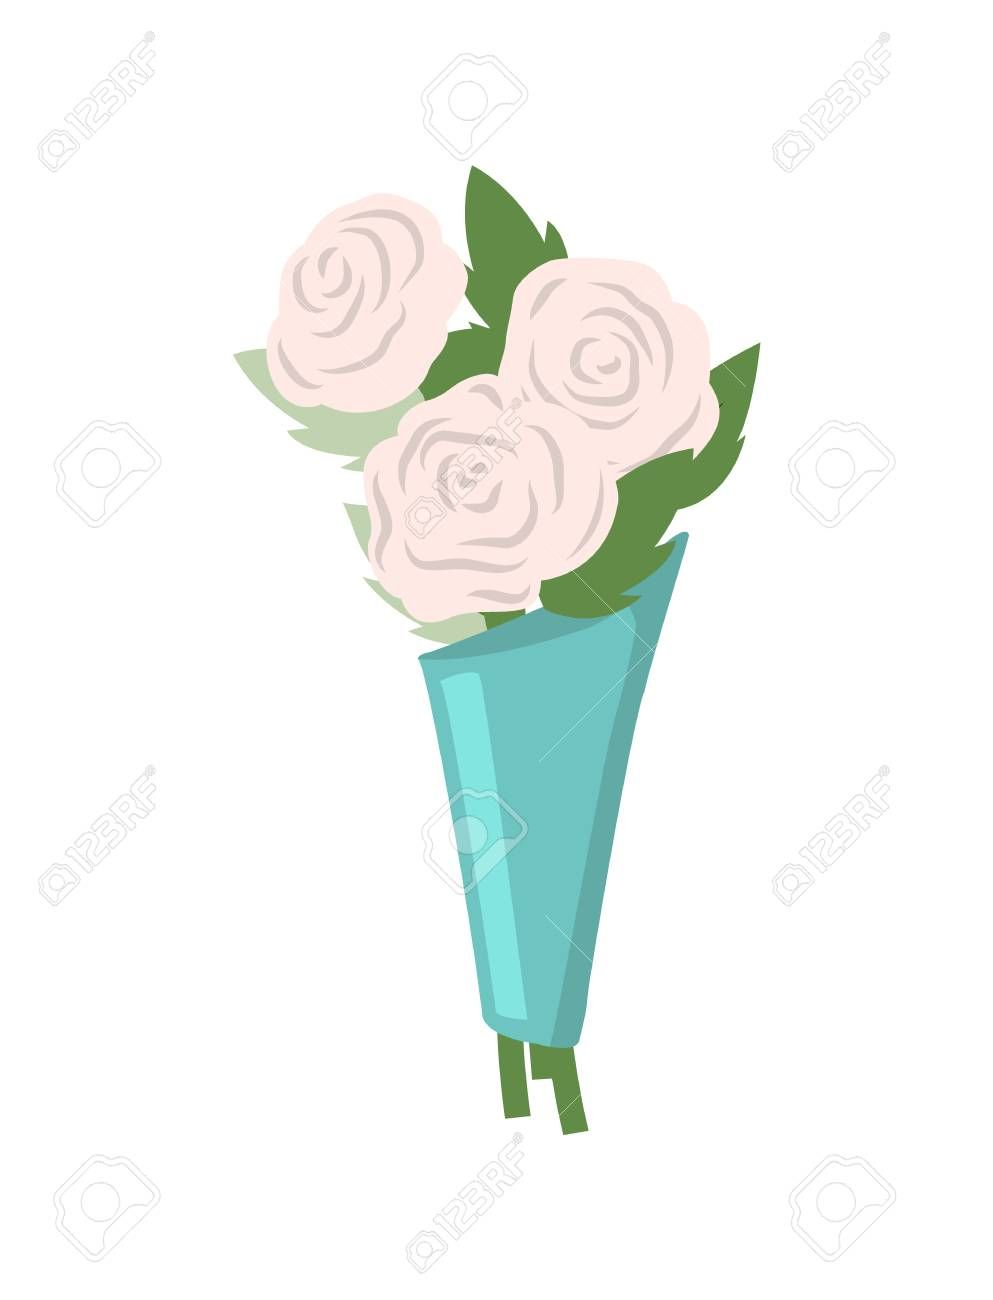 Flowers composition in blue paper wrapping vector, isolated icon closeup. Romantic present on holiday, flora botanical gift, blossom of white roses , #ad, #isolated, #vector, #closeup, #icon, #wrapping